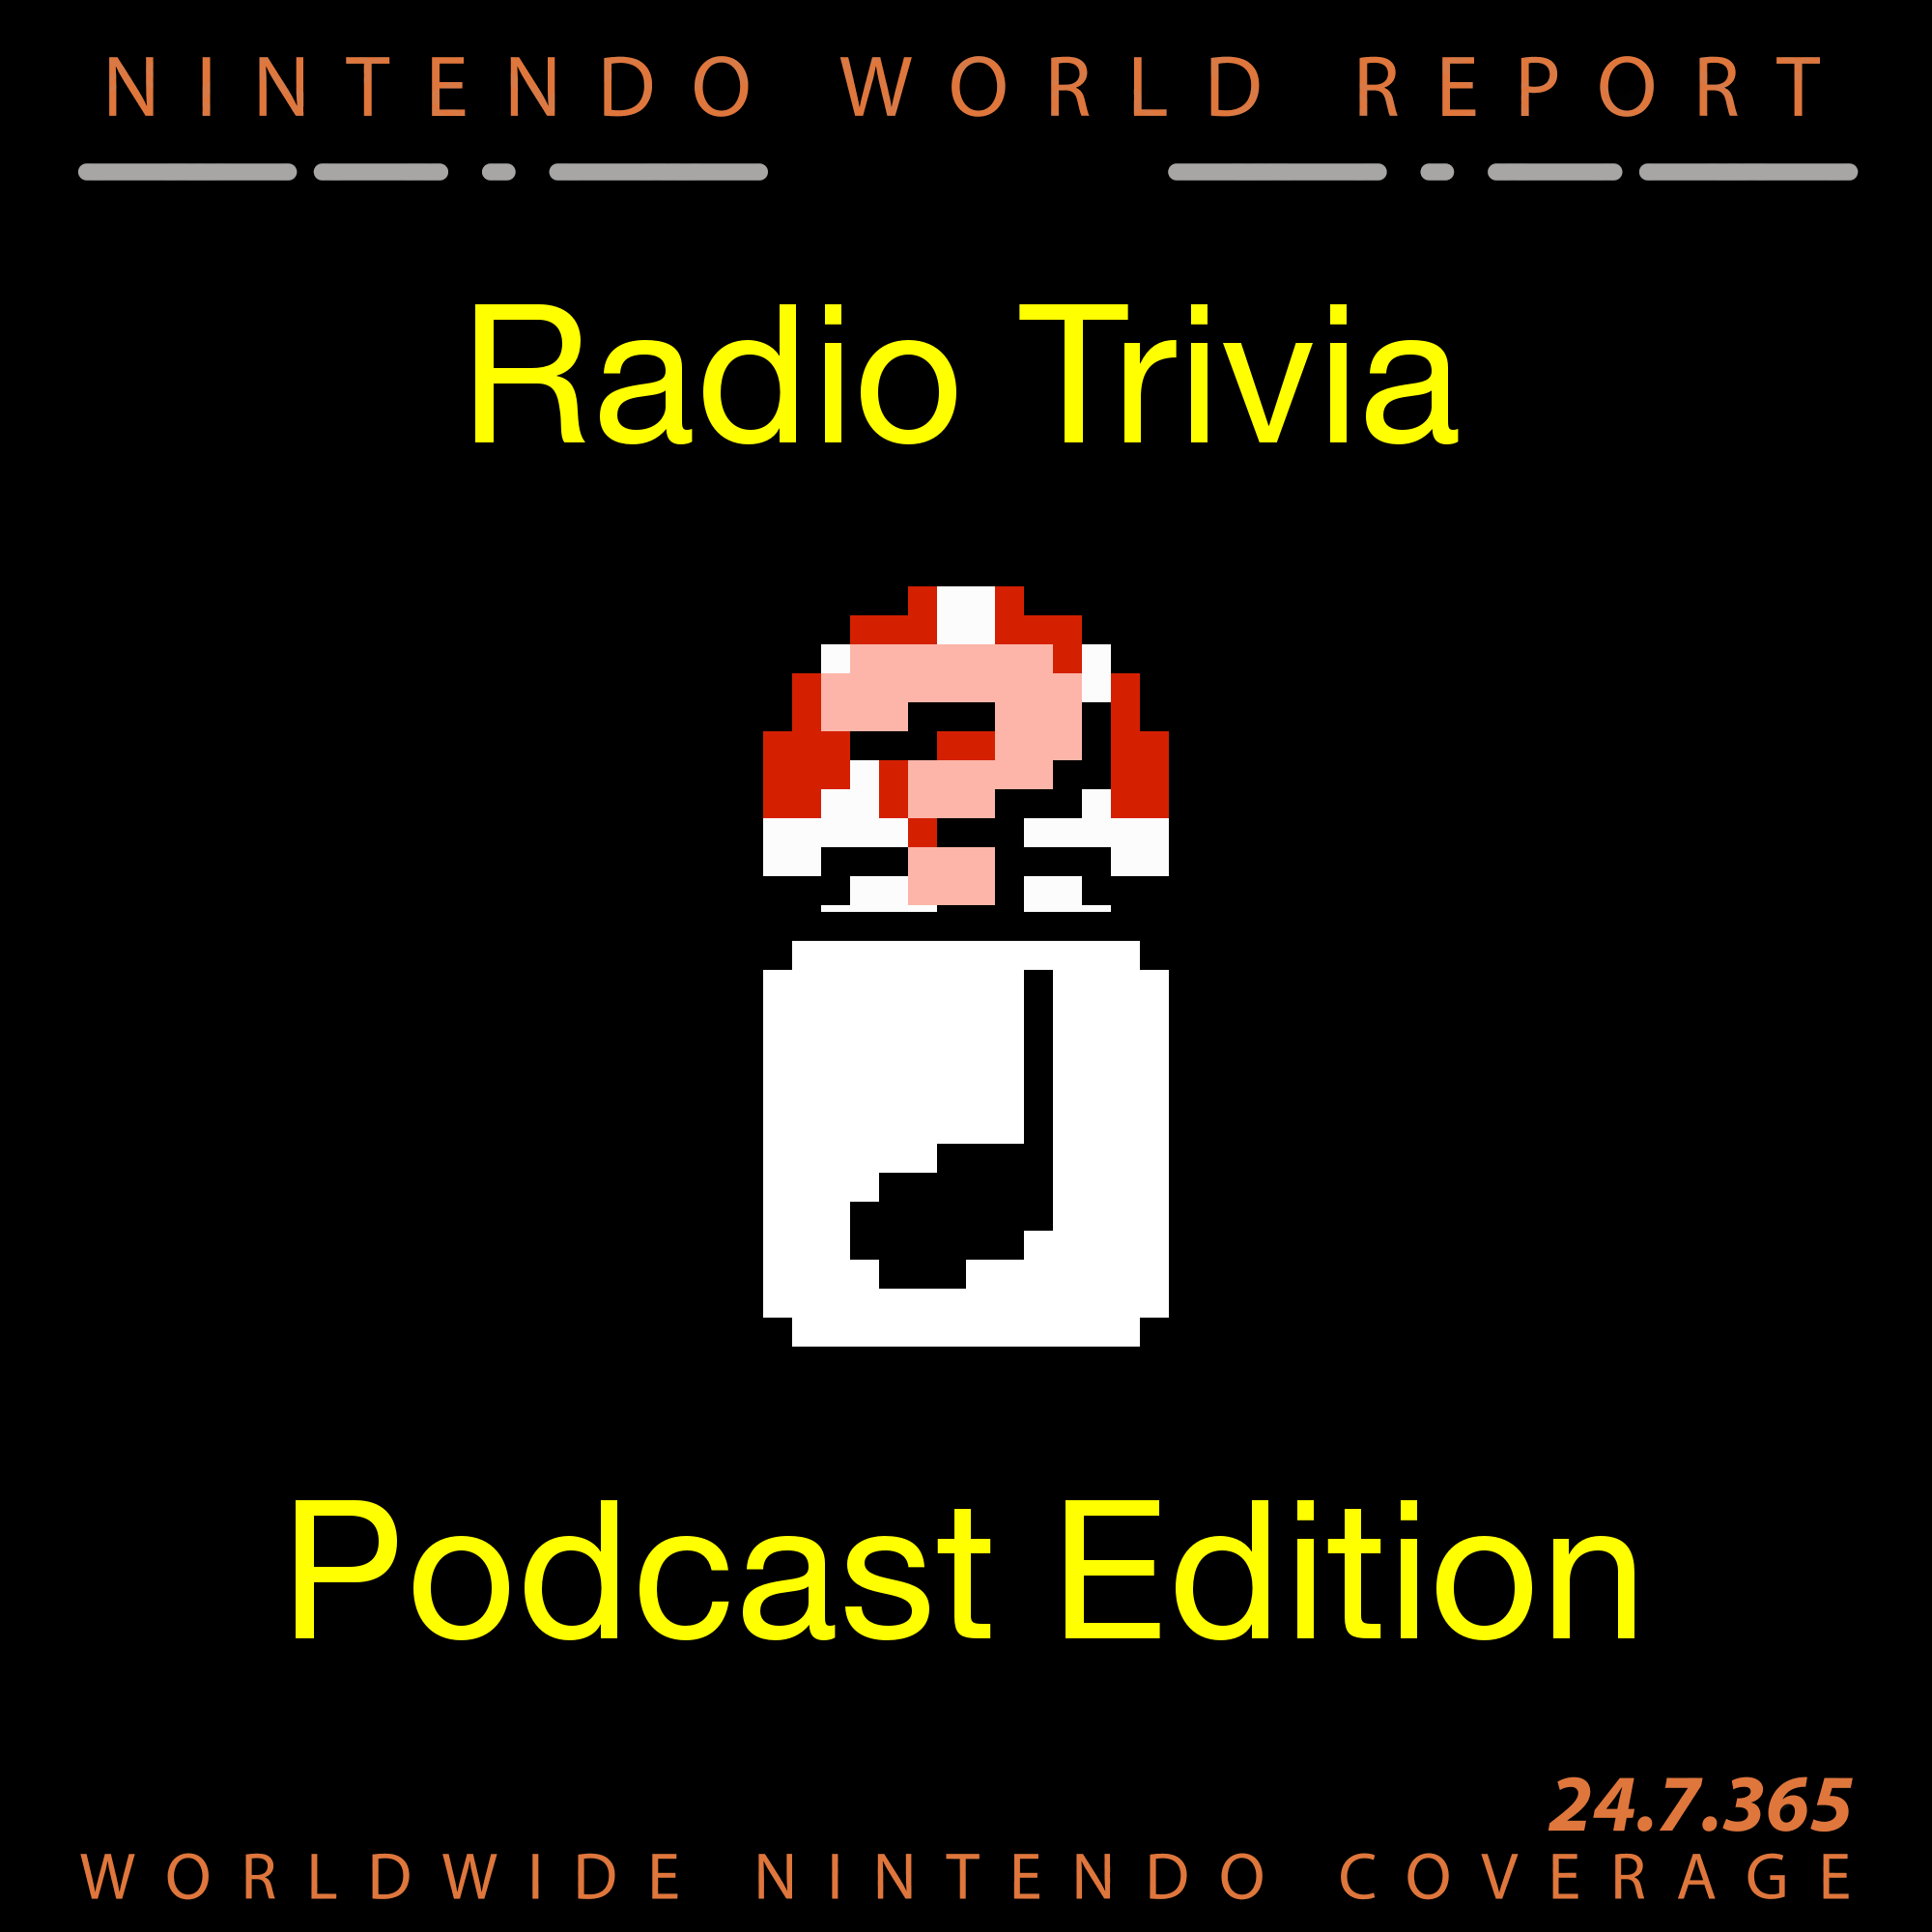 NWR's Radio Trivia: Podcast Edition